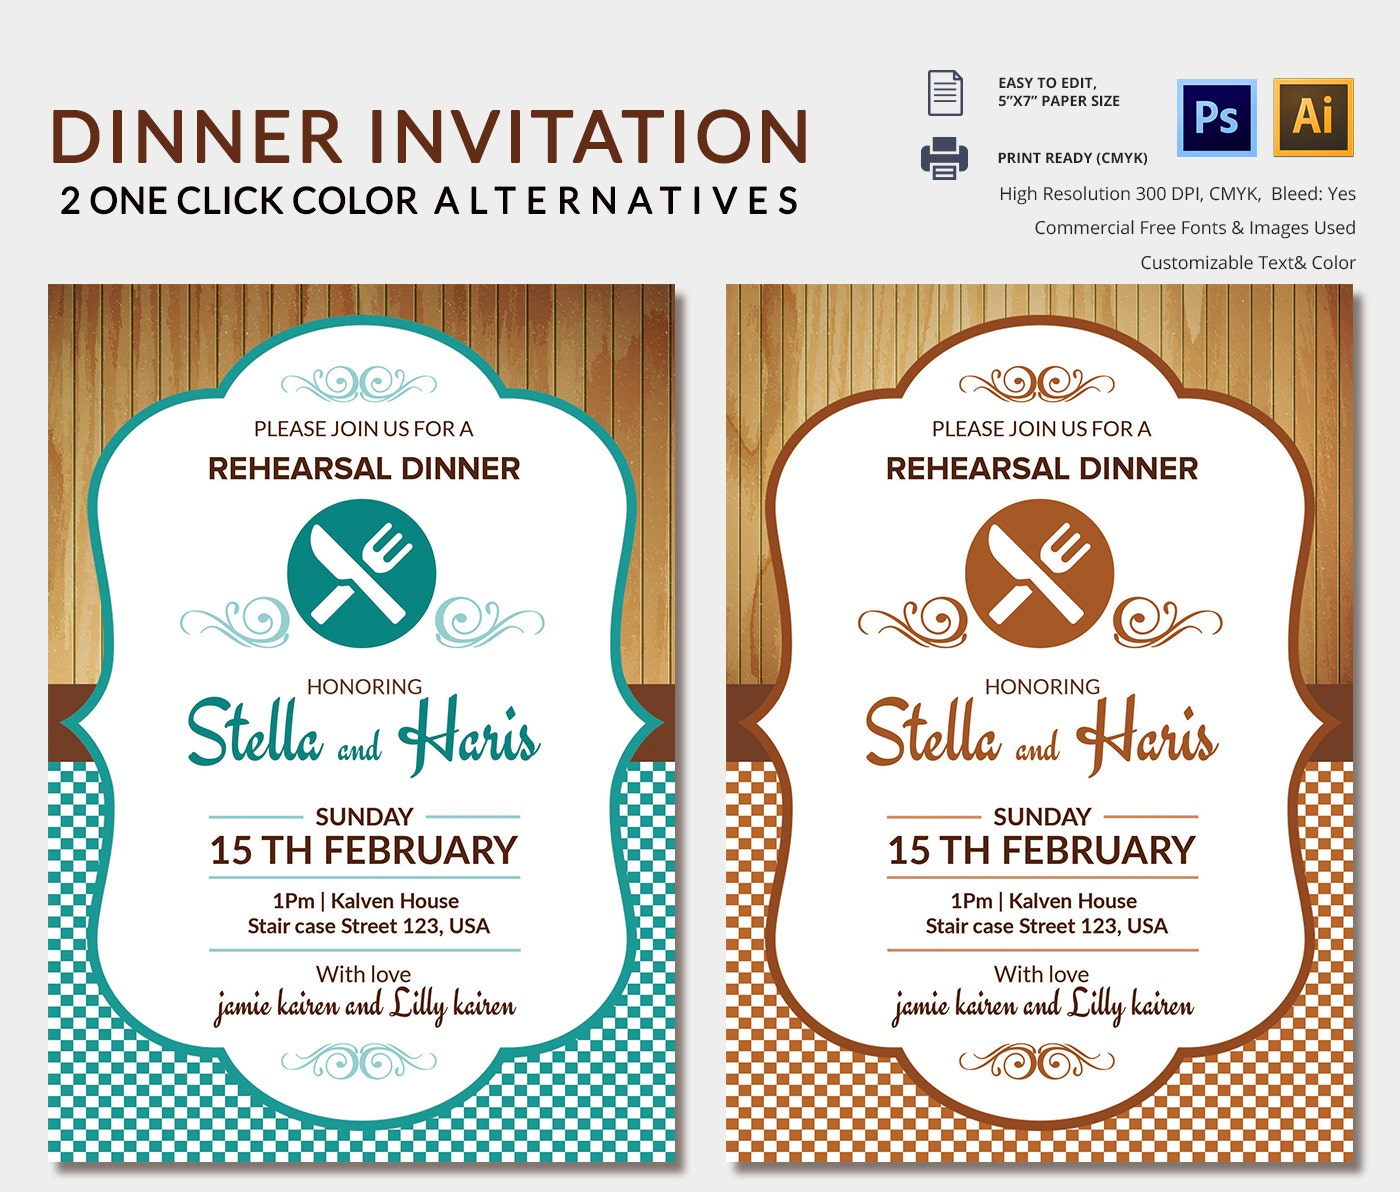 Lunch Invitation Template 25 Free PSD PDF Documents Download – Dinner Invitation Templates Free